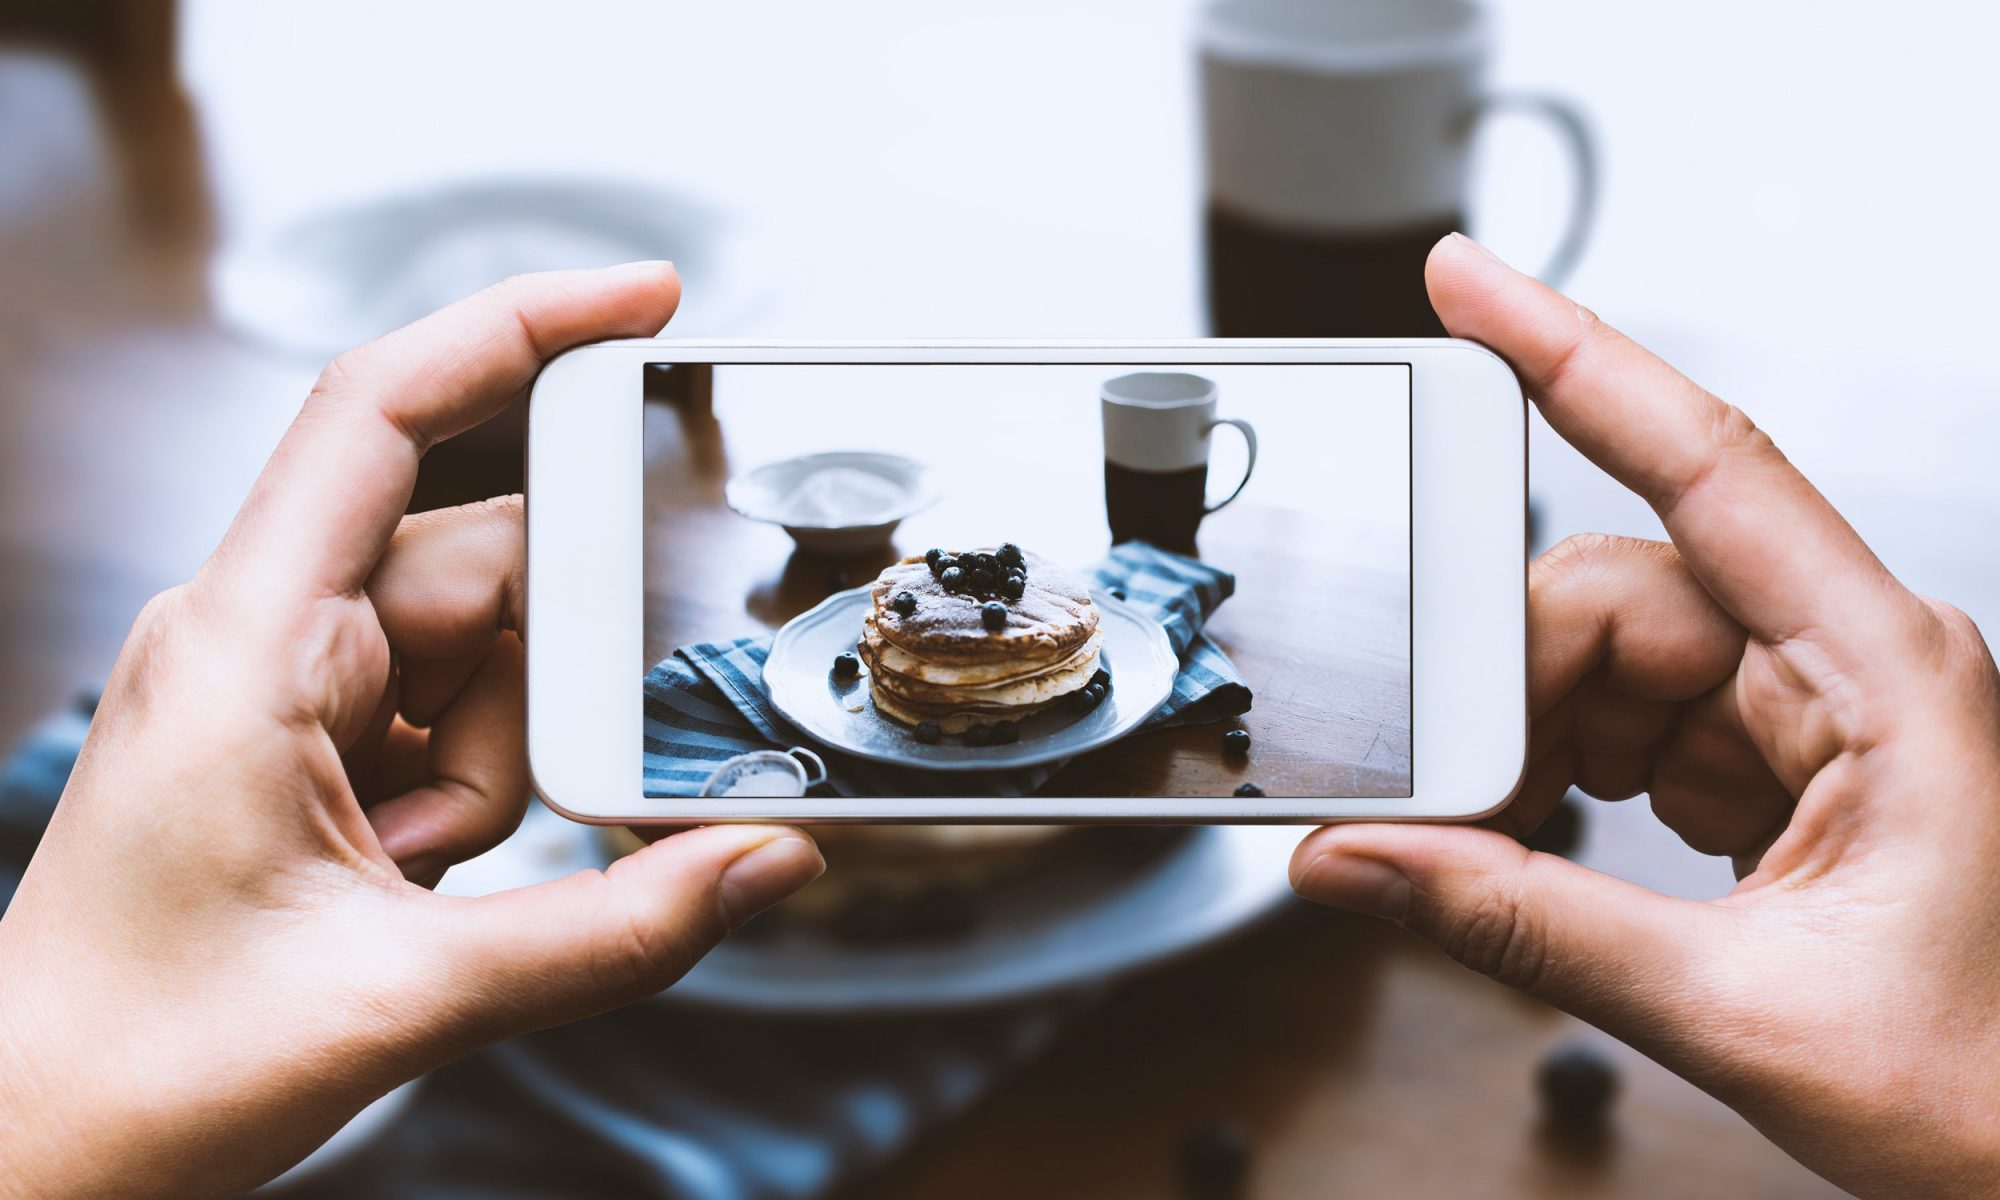 This New Technology Looks at Photos of Food and Tells You Its Ingredients